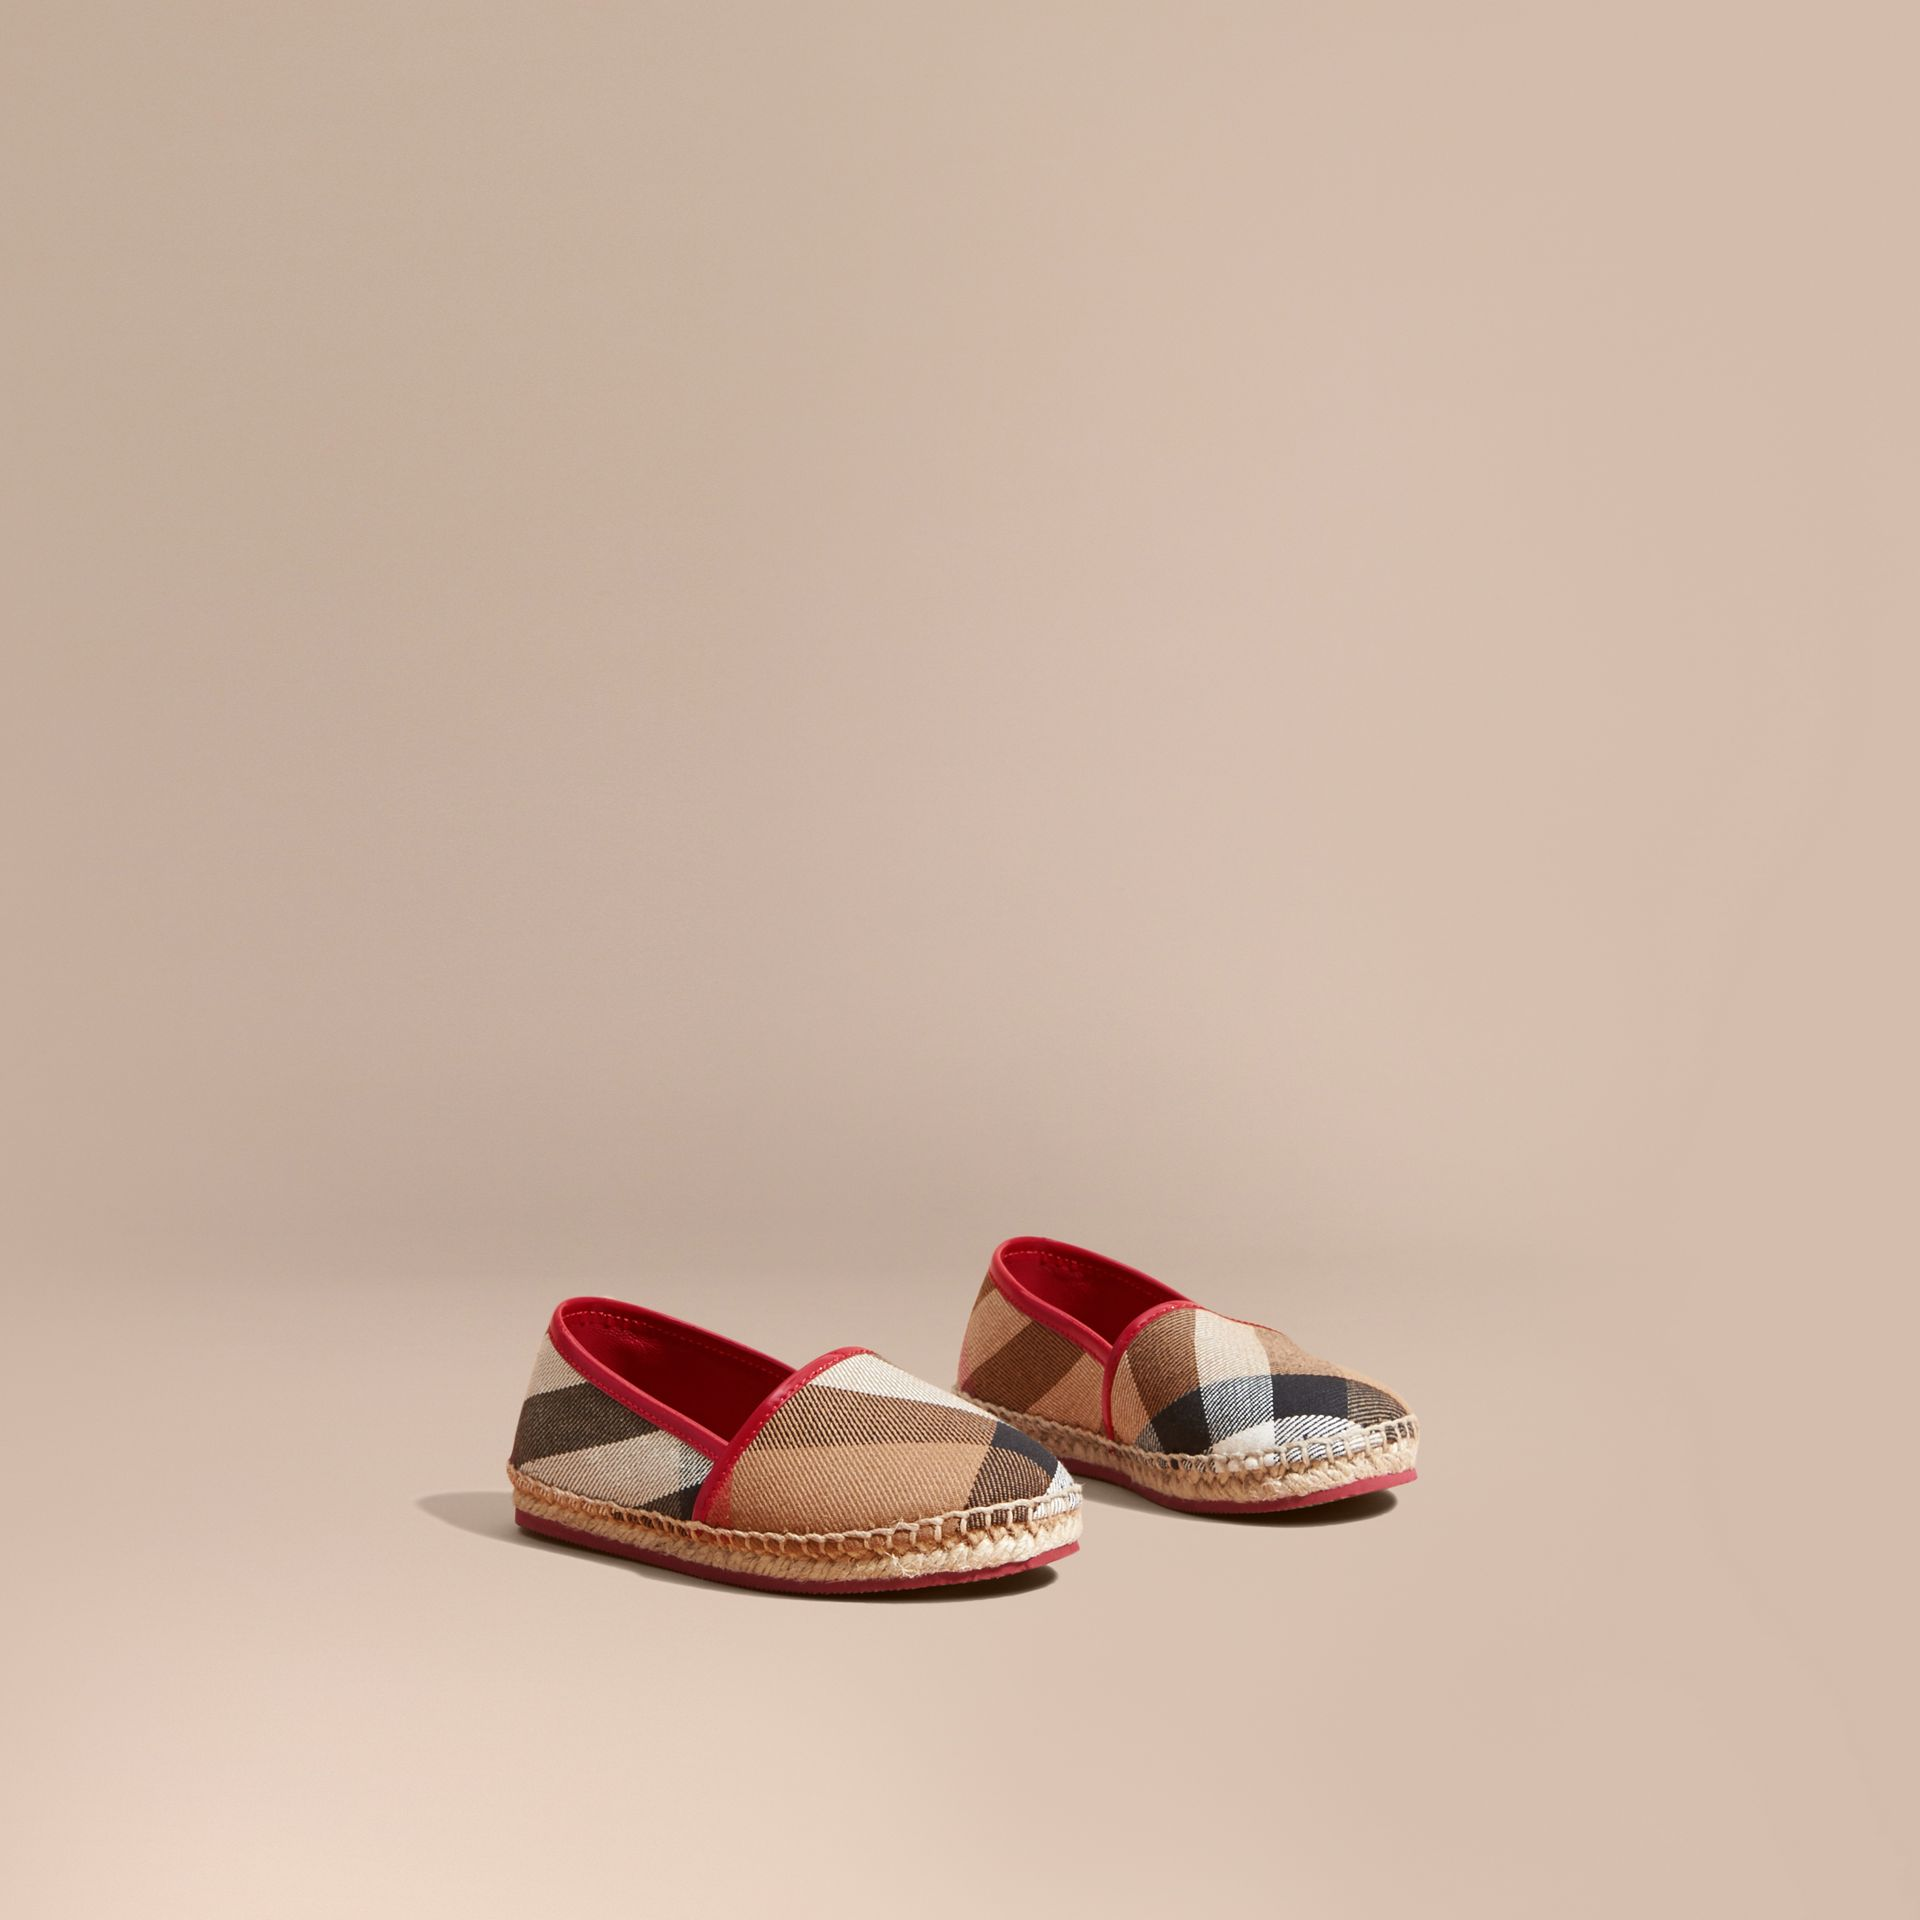 Berry pink Leather and House Check Espadrilles Berry Pink - gallery image 1